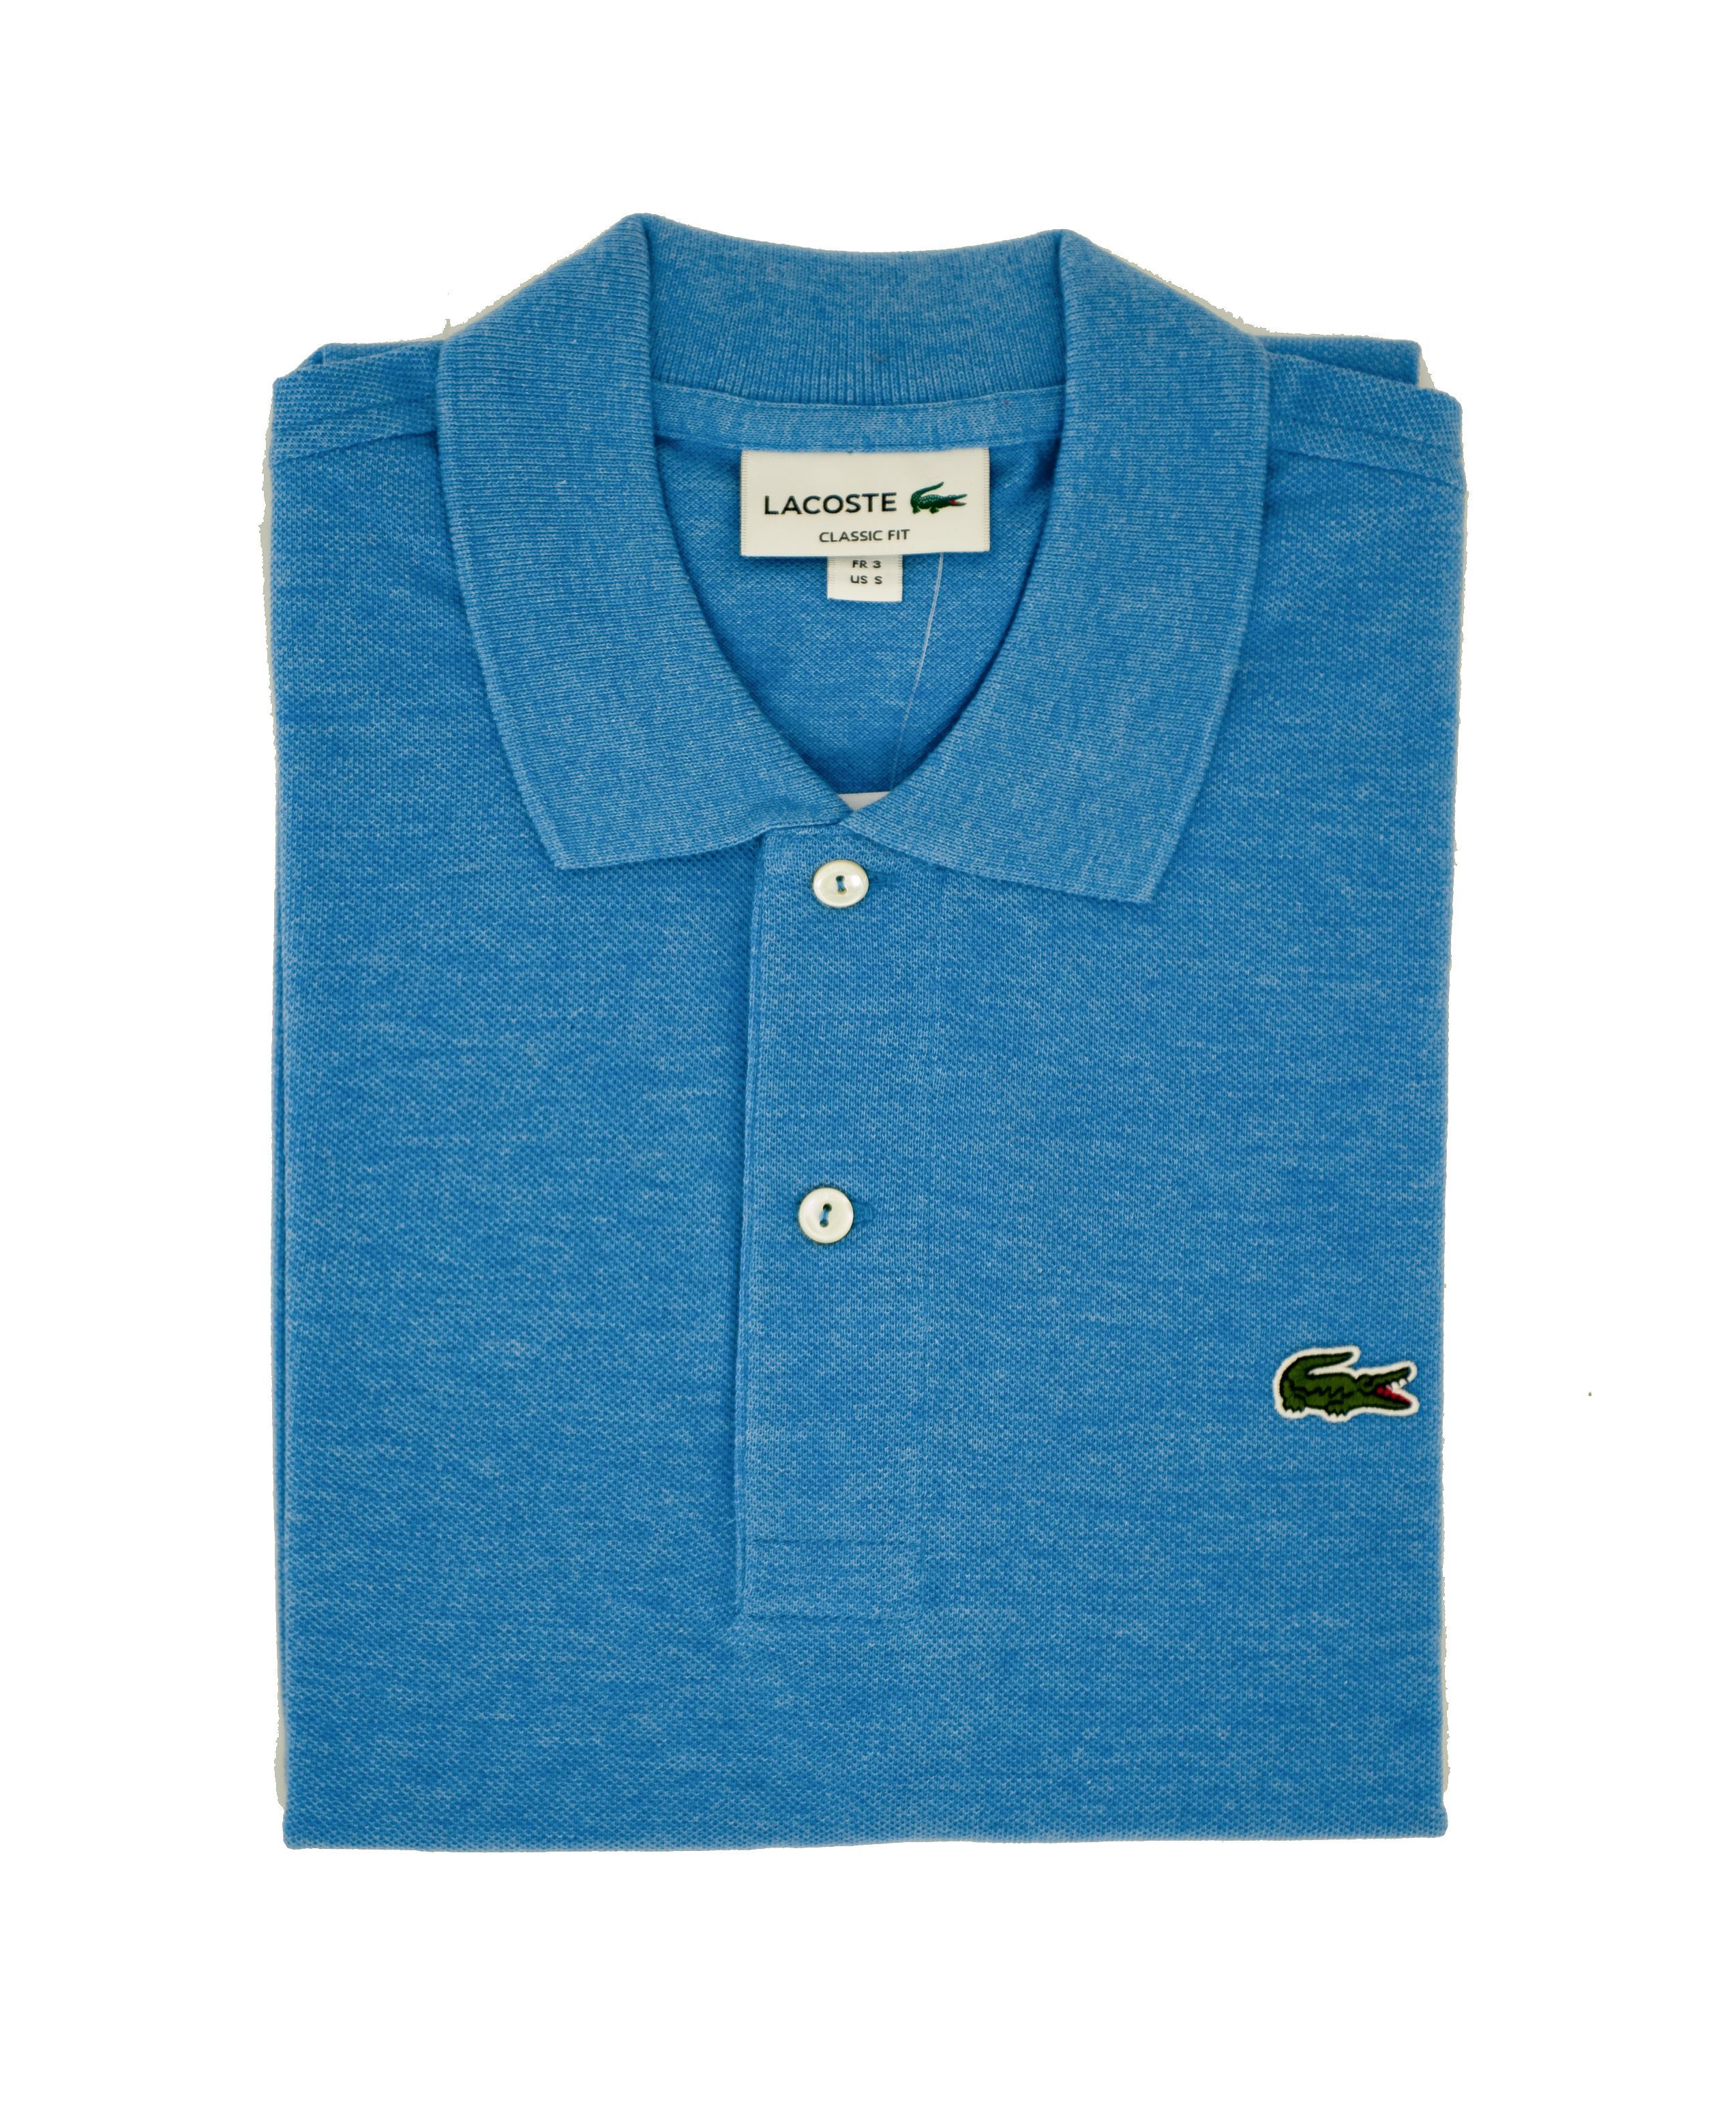 Chine Lacoste Ipomee Chine Lacoste Polo Polo Polo Ipomee Lacoste Ymb76gIfyv